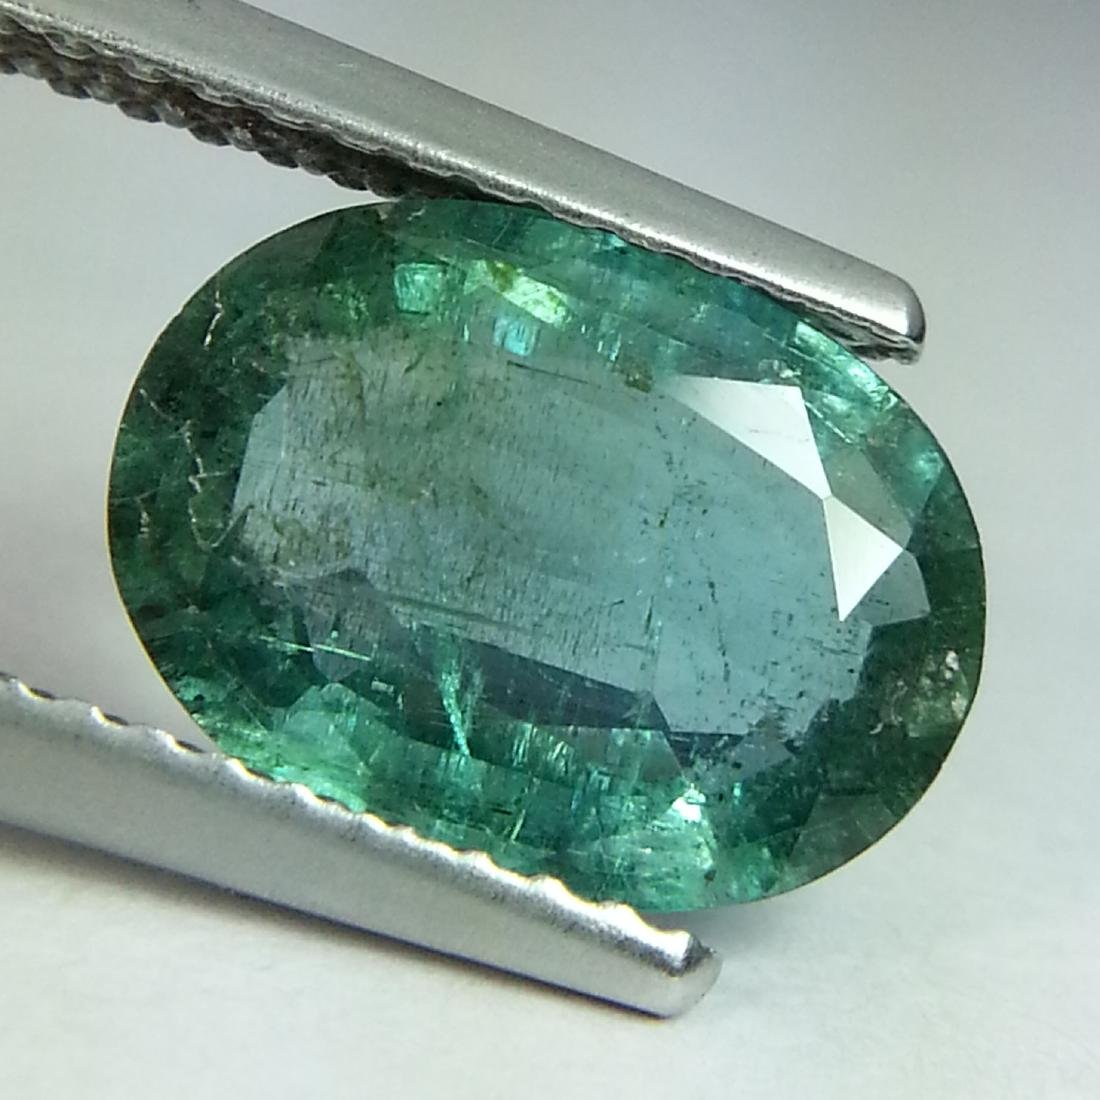 Rare Gem Oval Cut Natural Emerald - 1.93 ct